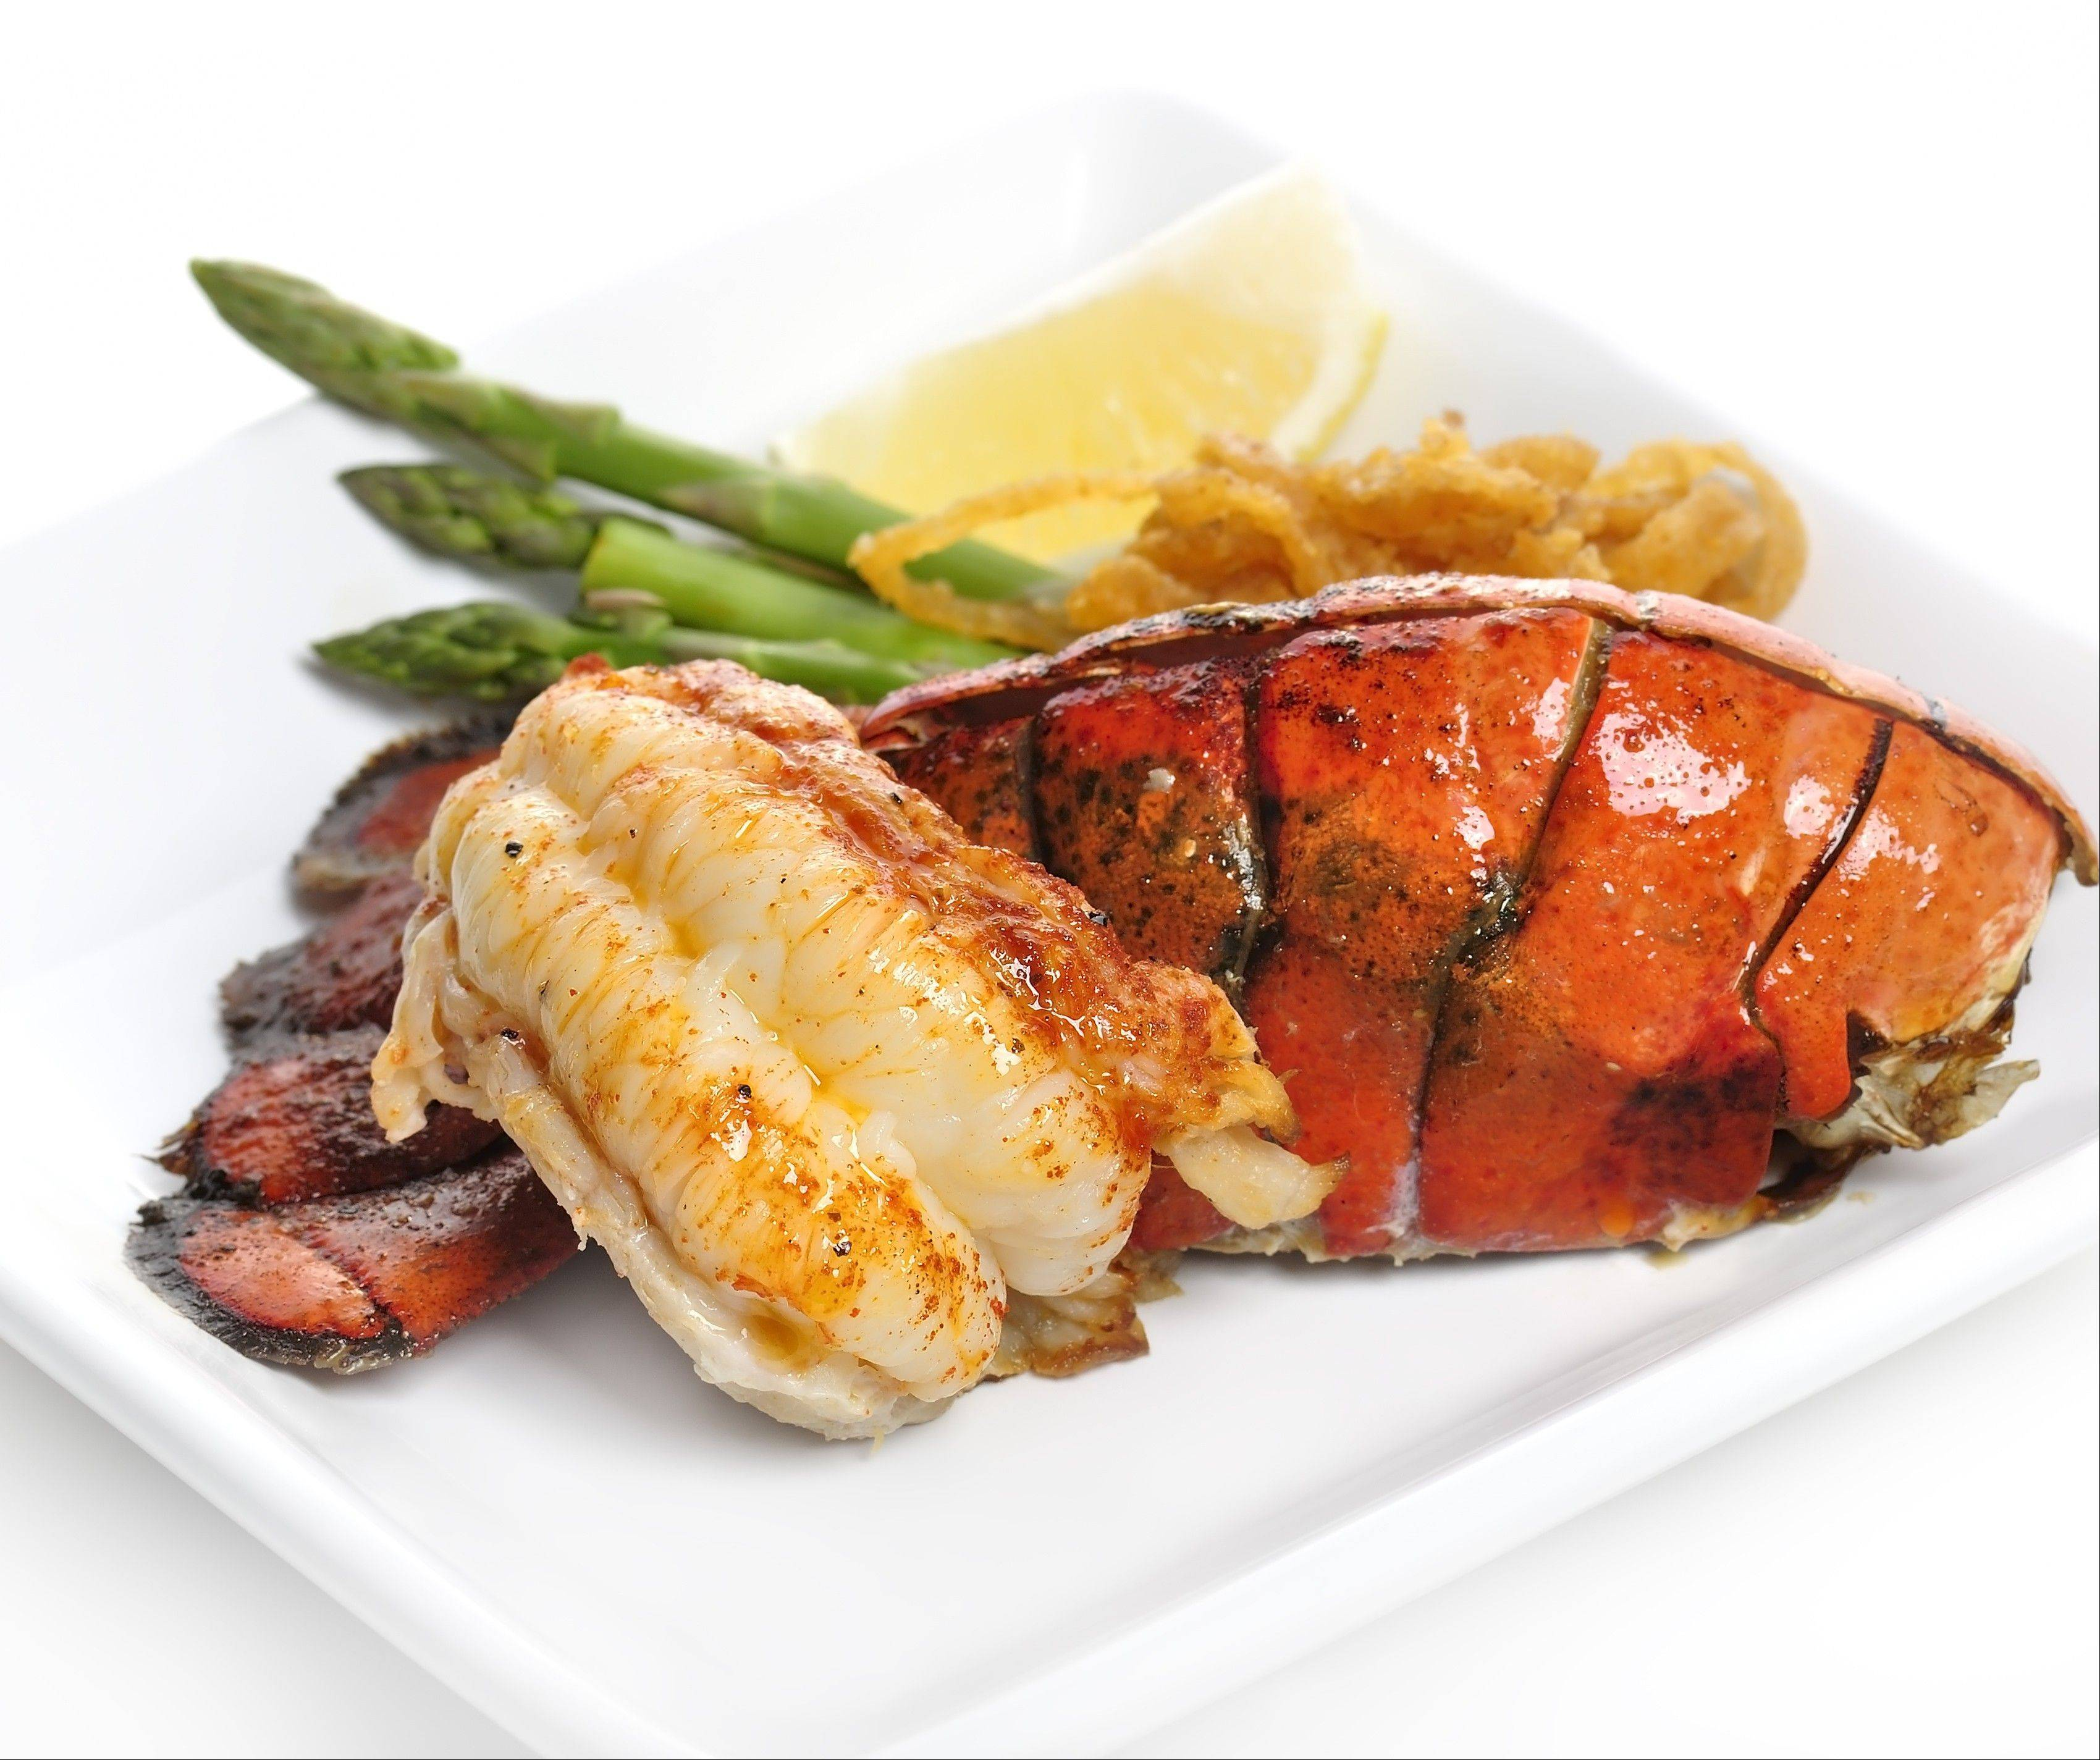 The price you pay for lobster in a restaurant is determined more by the restaurant market than the lobster market.